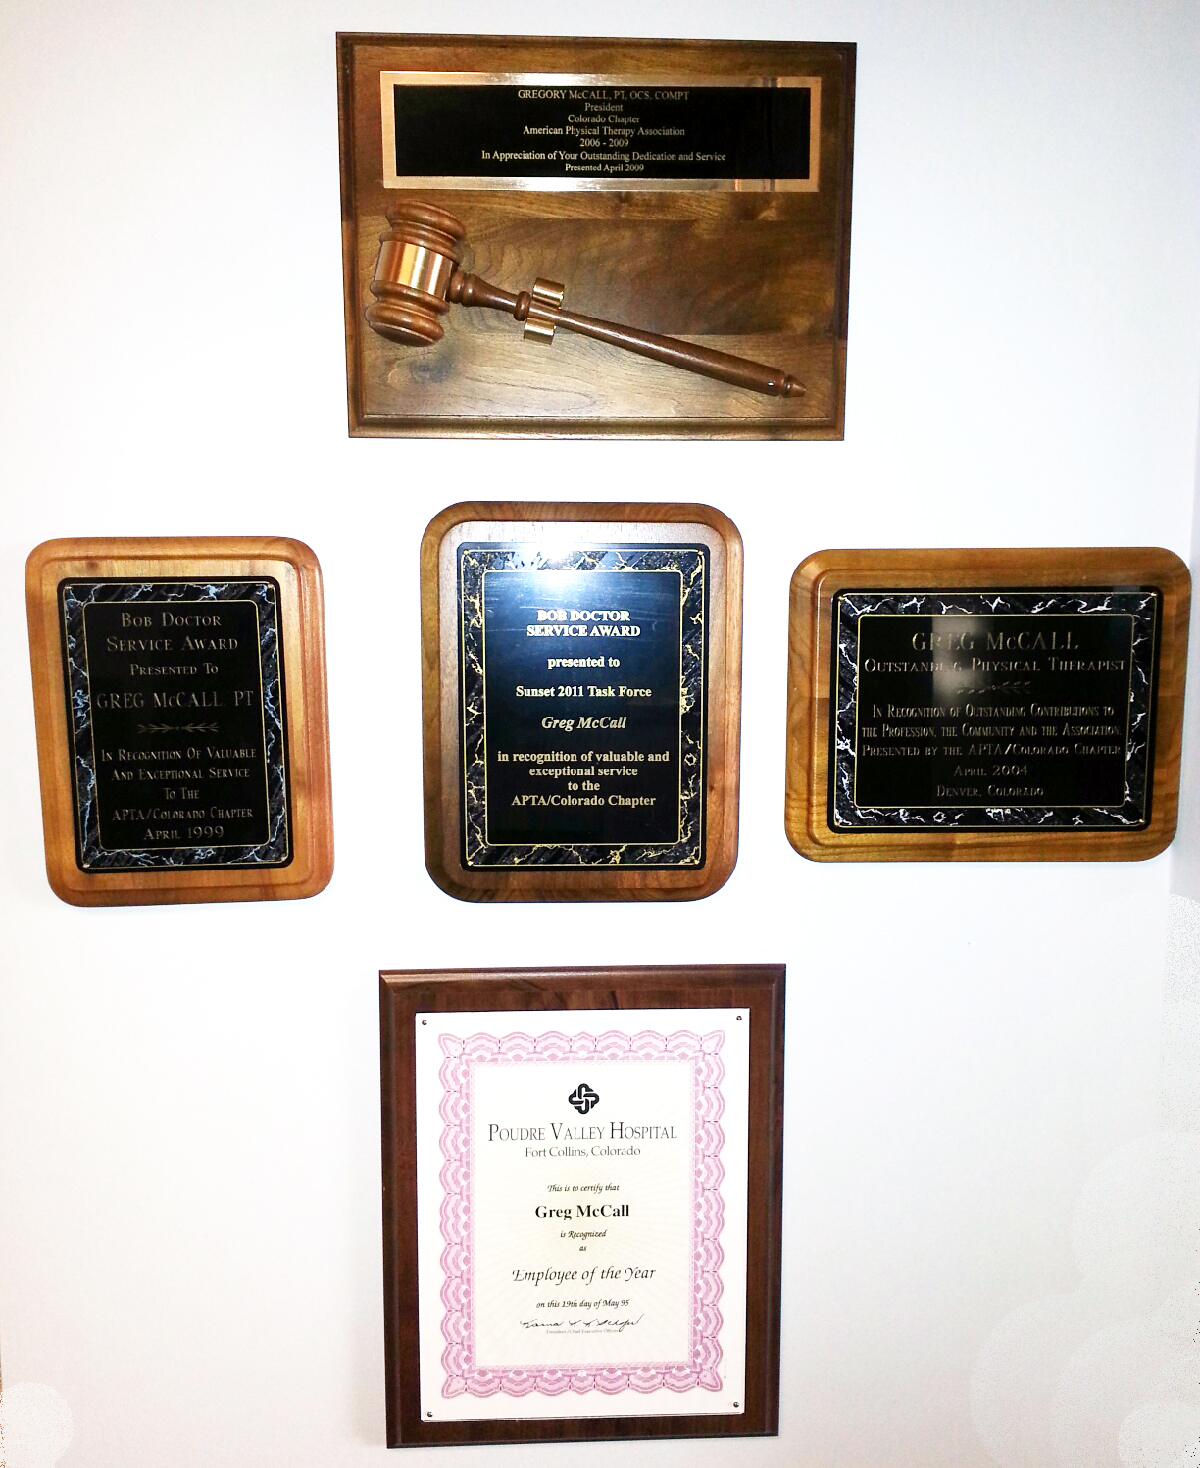 All Pro Physical Therapy Awards